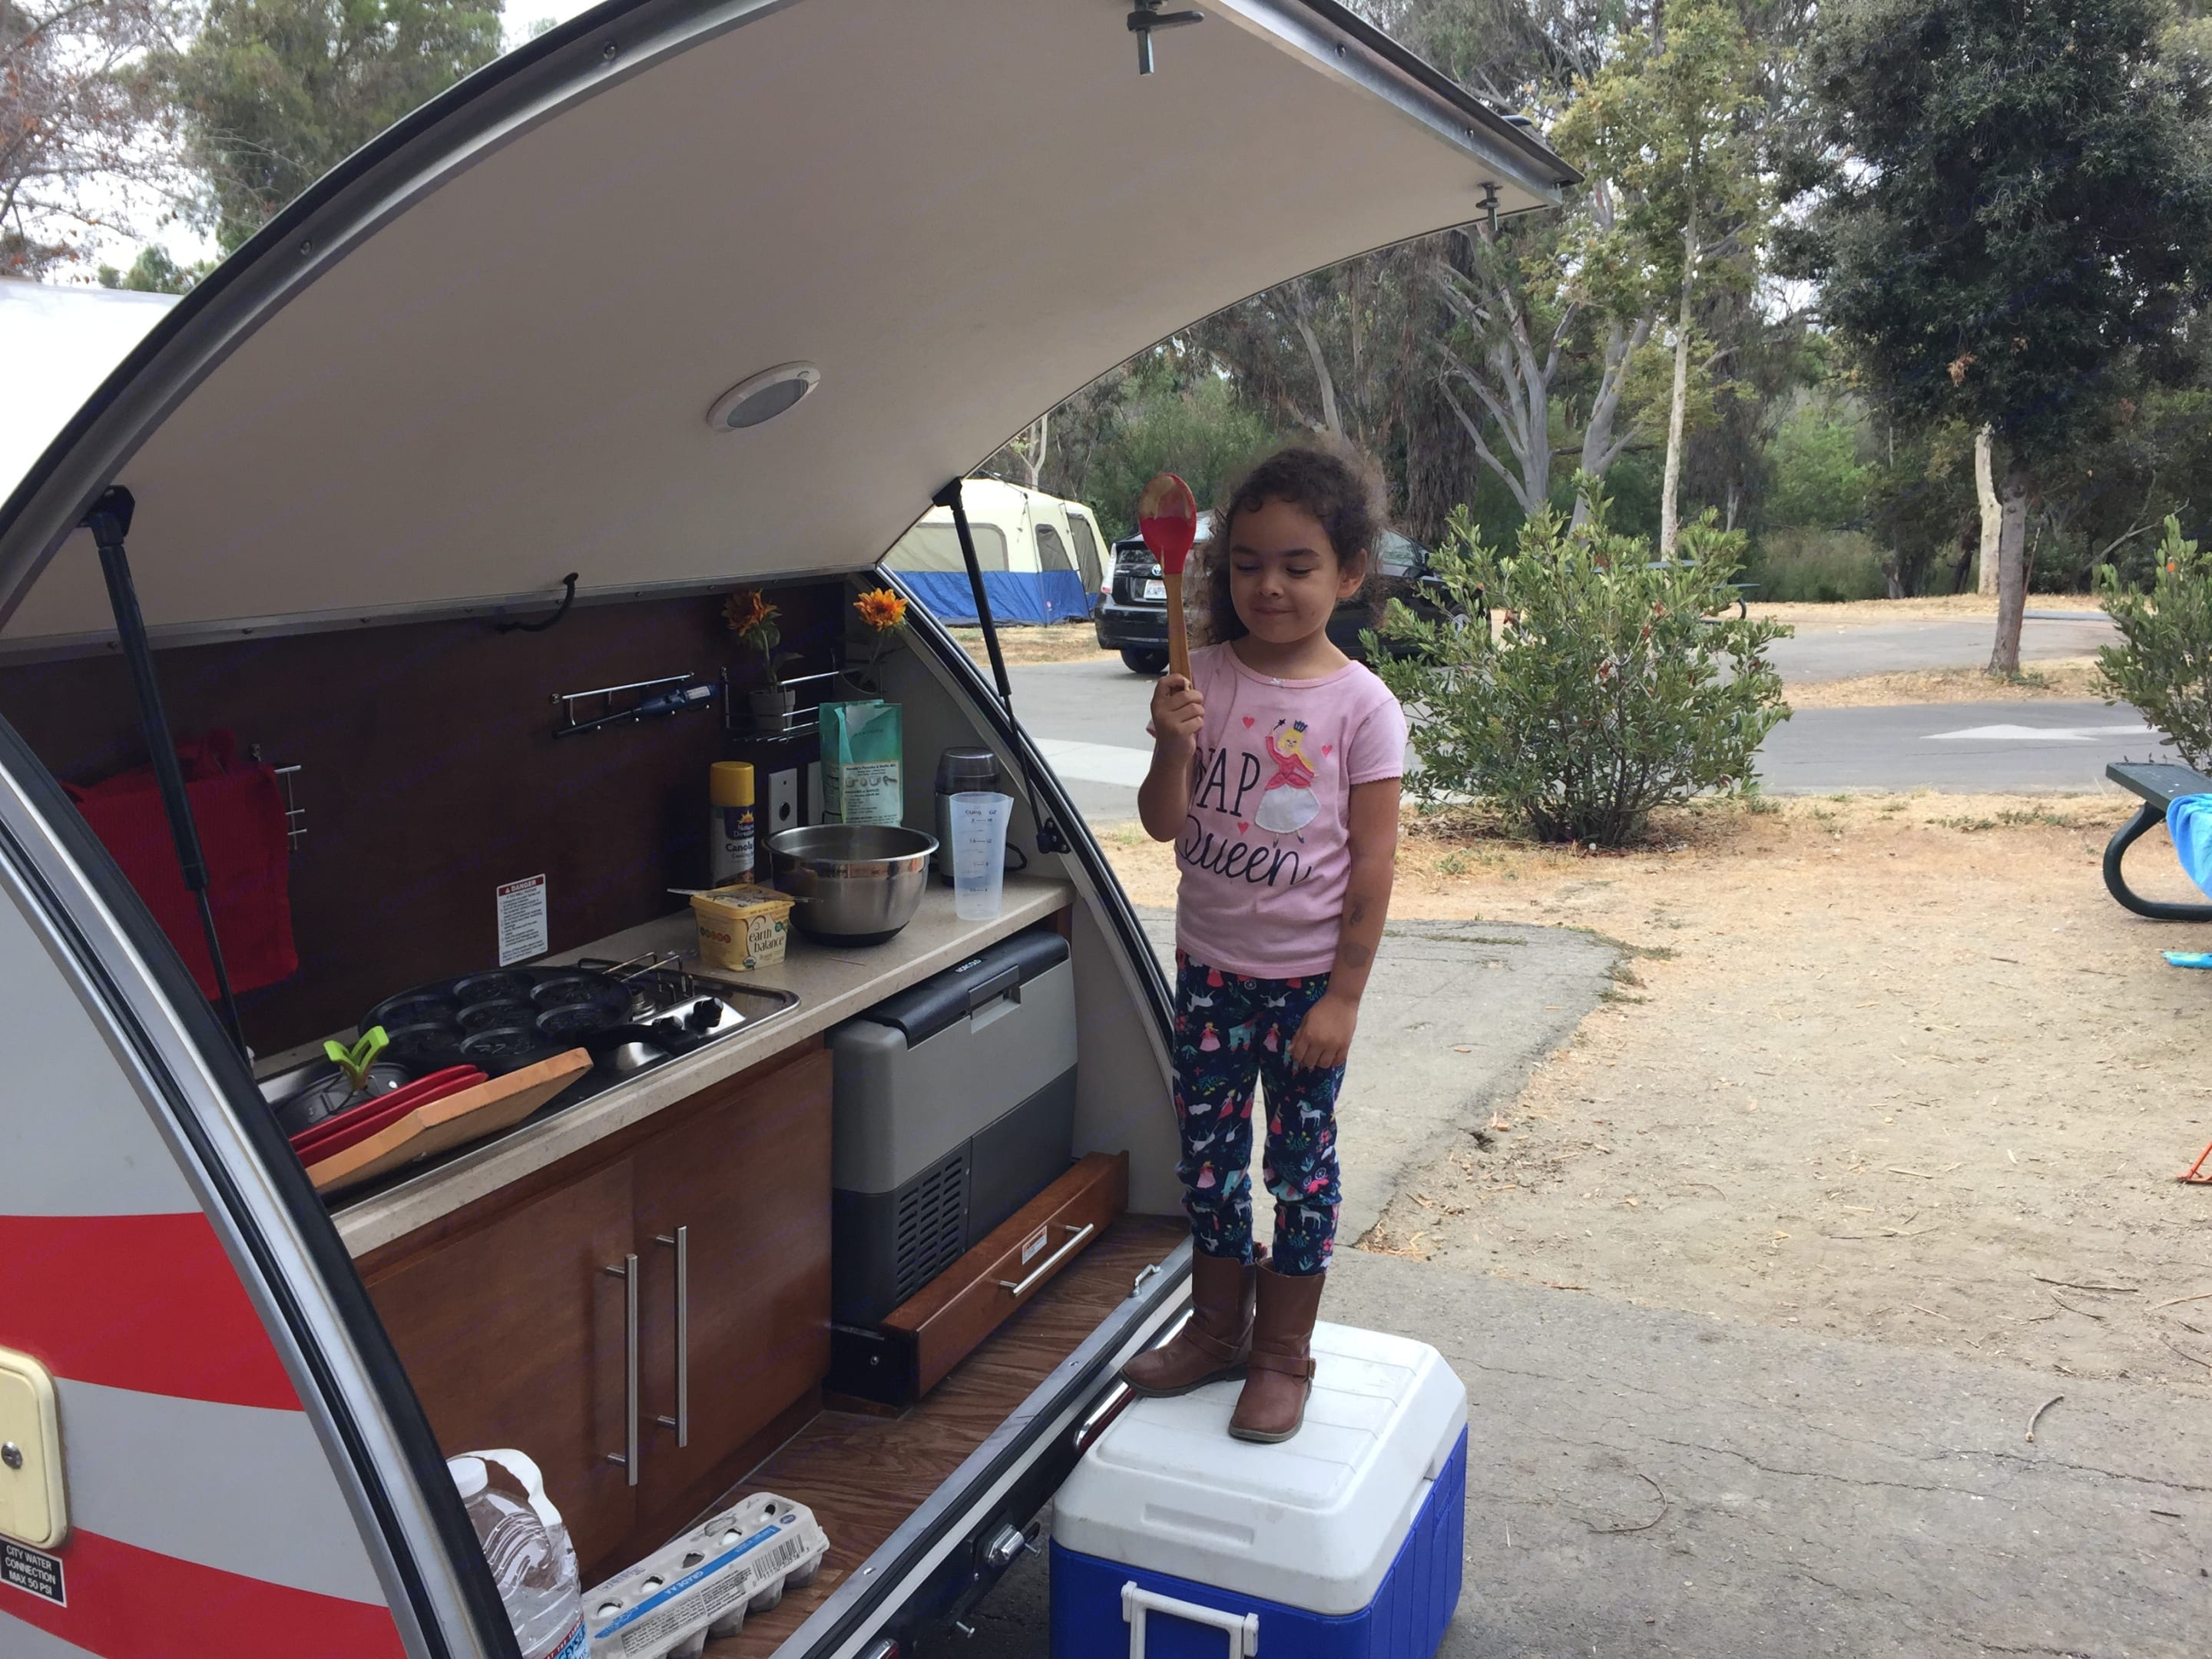 This was the first camping trip for our granddaughter.  She was afraid to camp, but in the teardrop she has a blast!. T@G Teardrop Trailer 2016